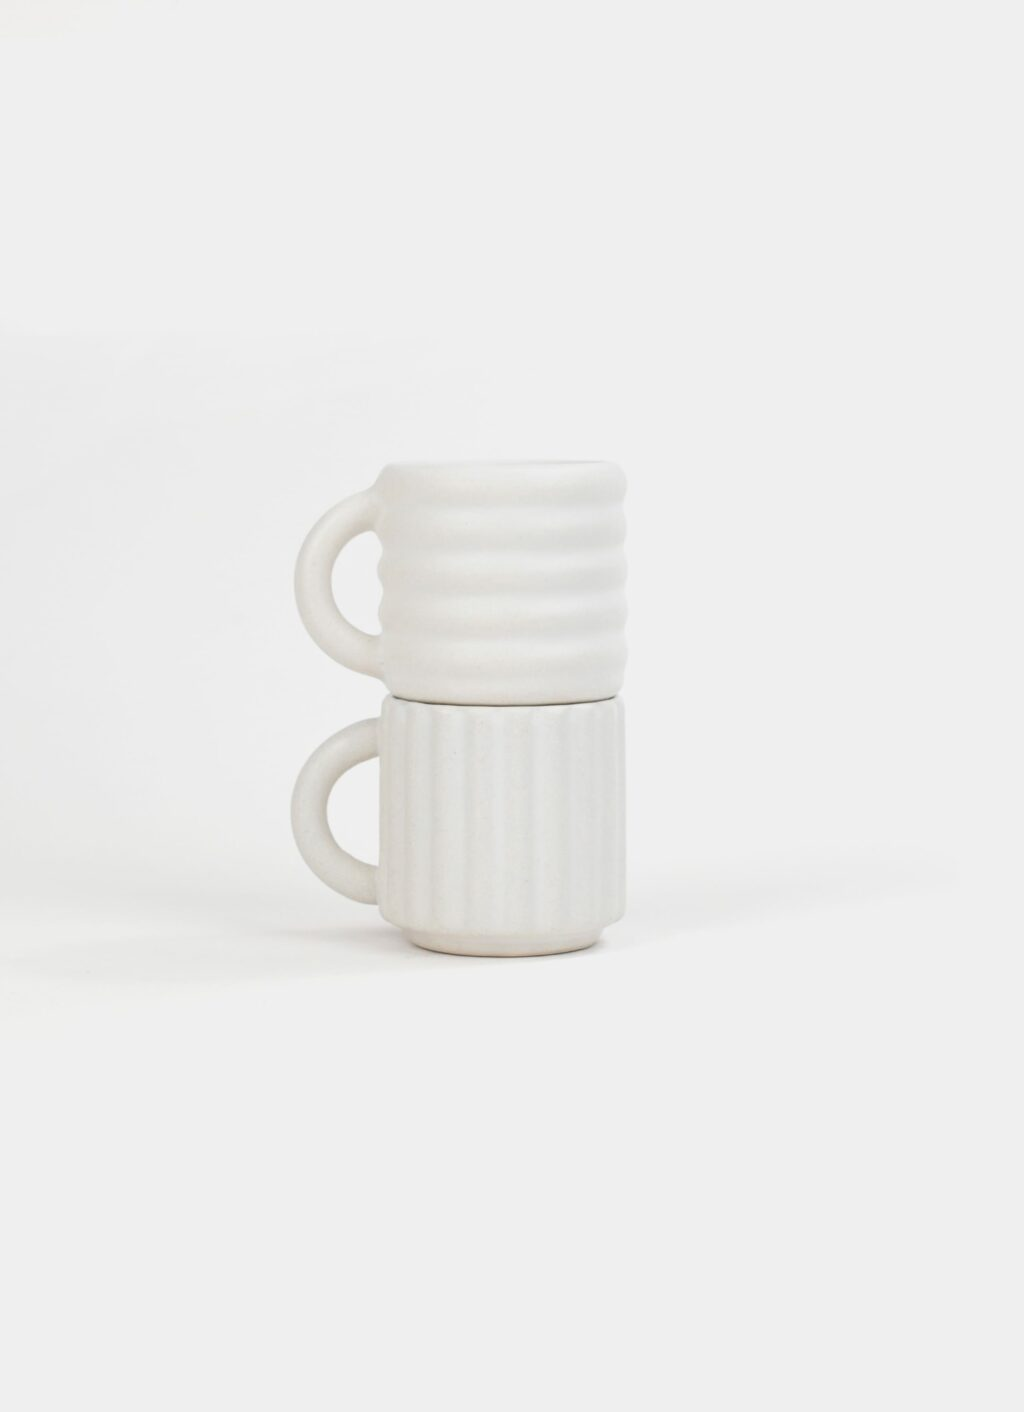 Form and Seek - Ripple Espresso Cups - Set of Two - White